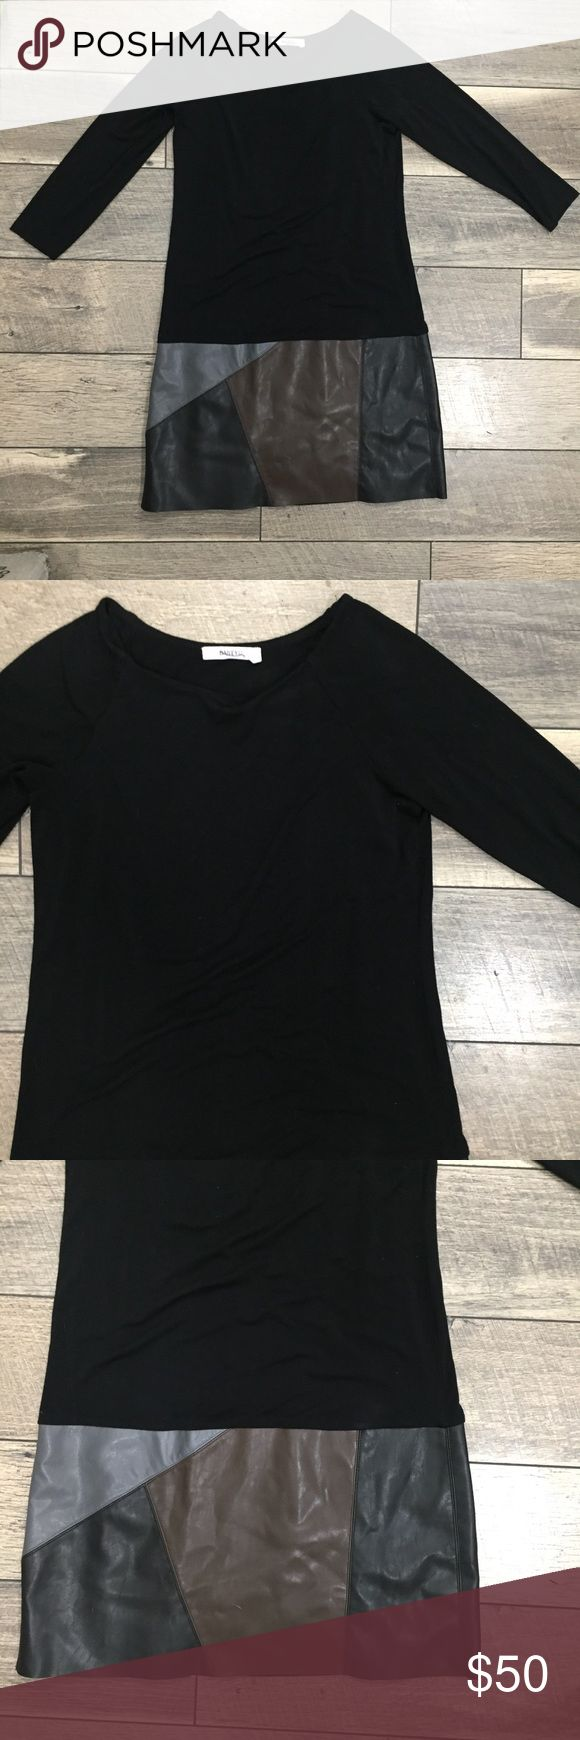 Bailey 44 Black Dress - Small Get this high end designer dress for a fraction of the retail price! Amazing piece for the office or a night out with friends! Comfortable jersey bodice with unique faux leather accents on bottom.  Size small. Excellent used condition. Bailey 44 Dresses Midi